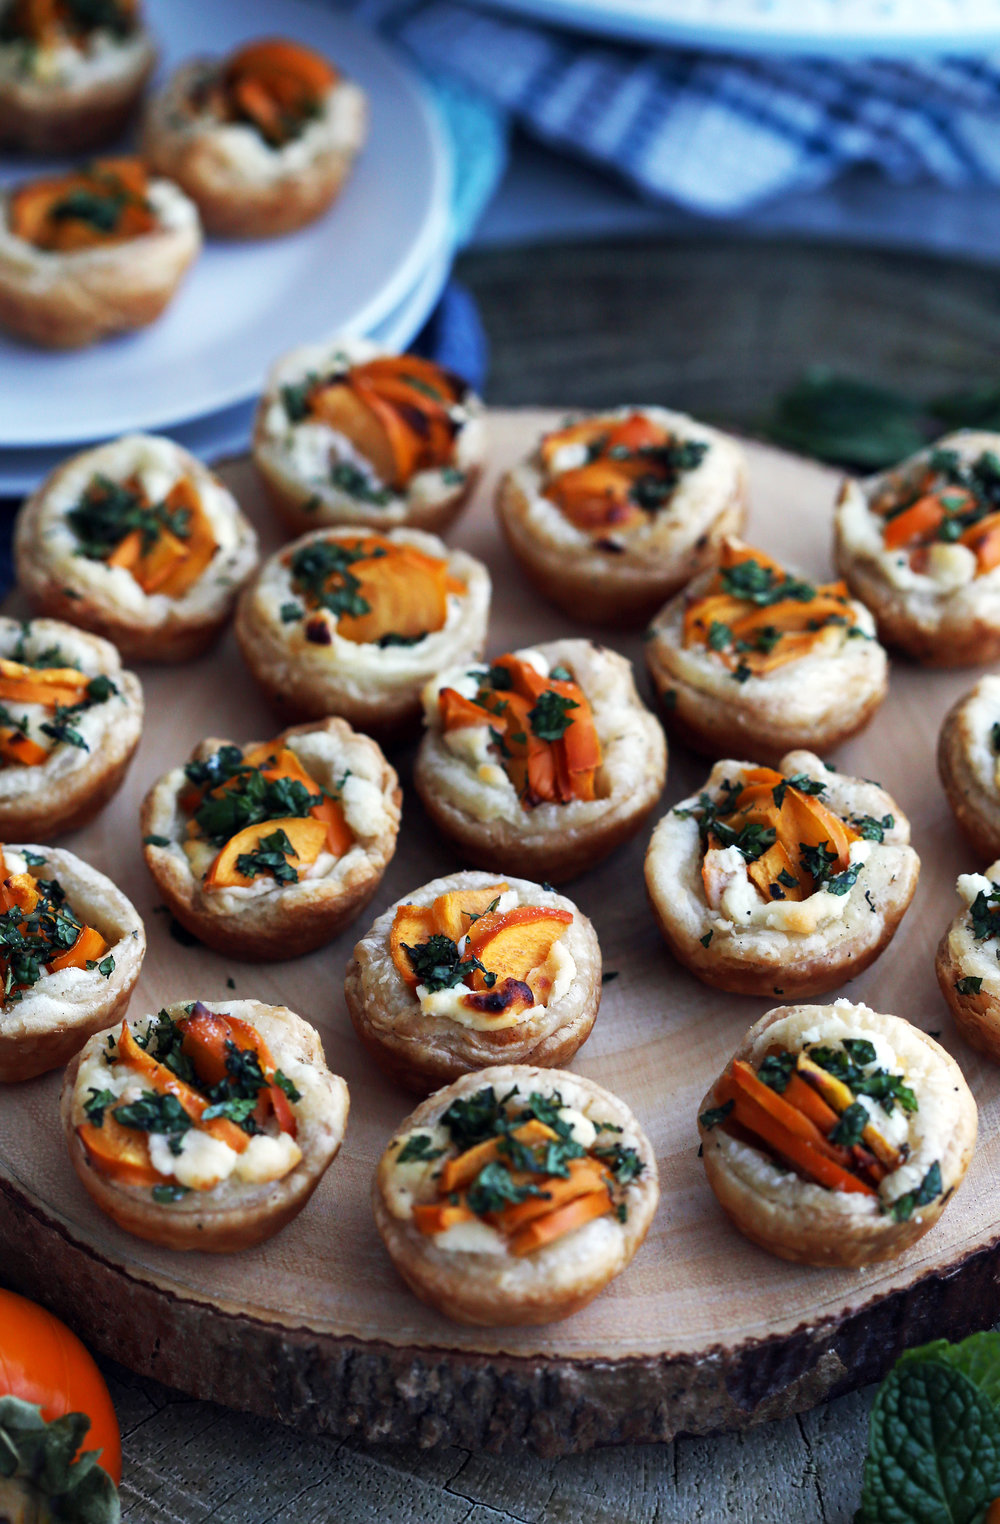 Persimmon Goat Cheese Tartlets with fresh mint topping on a large round wooden platter.